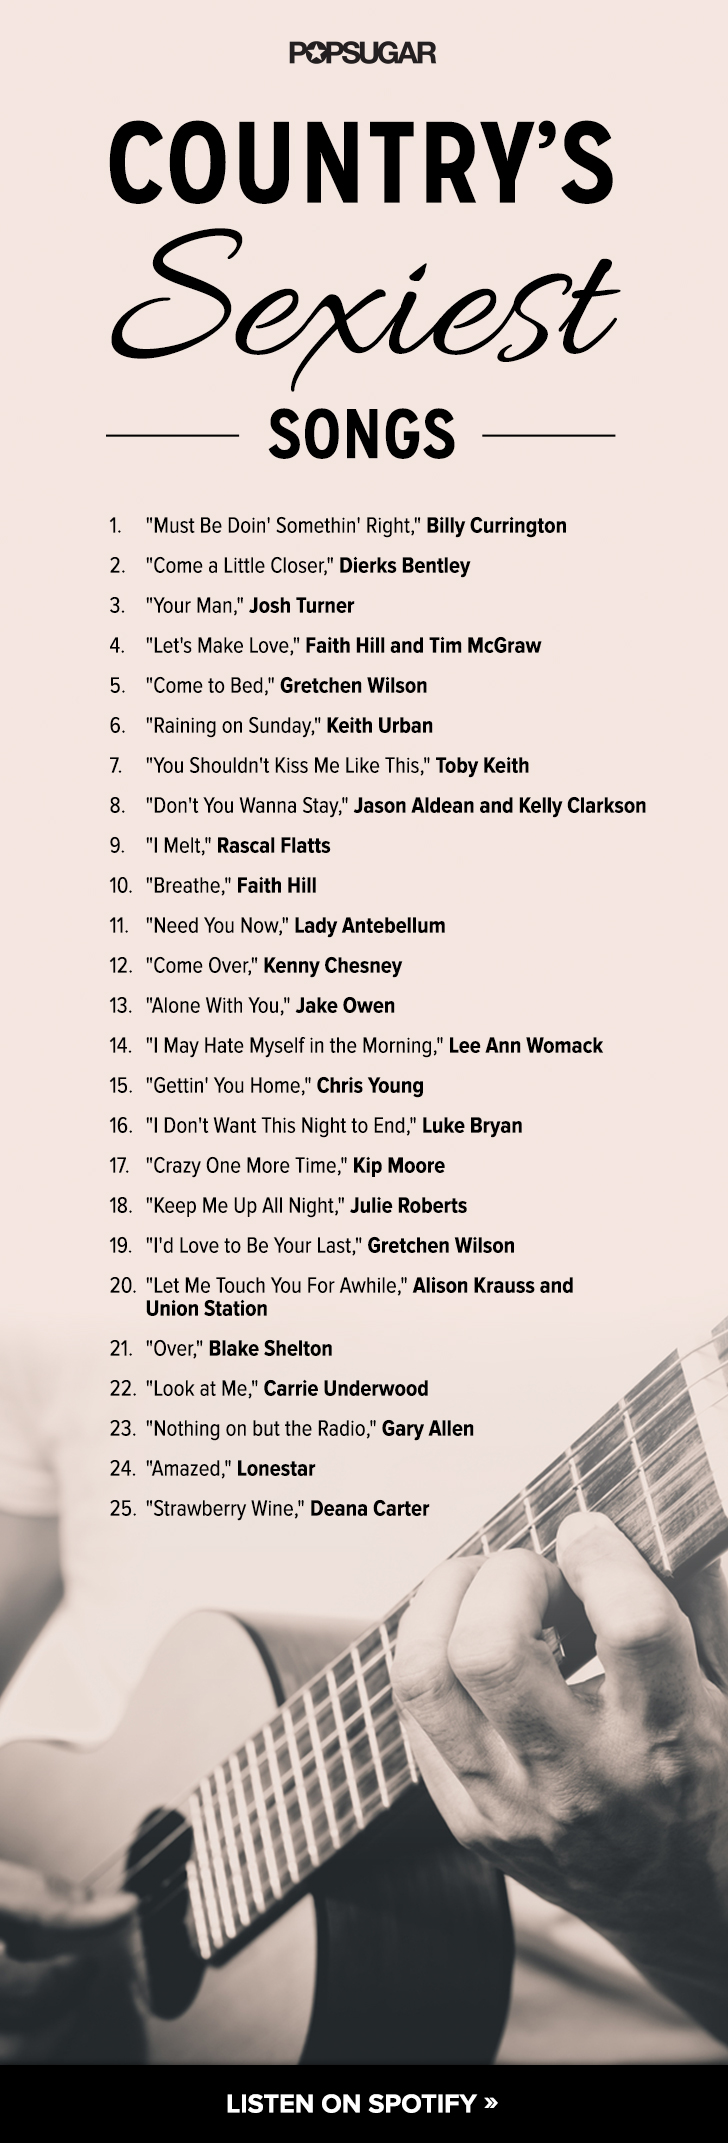 Country Love Songs  Playlists  POPSUGAR Love  Sex